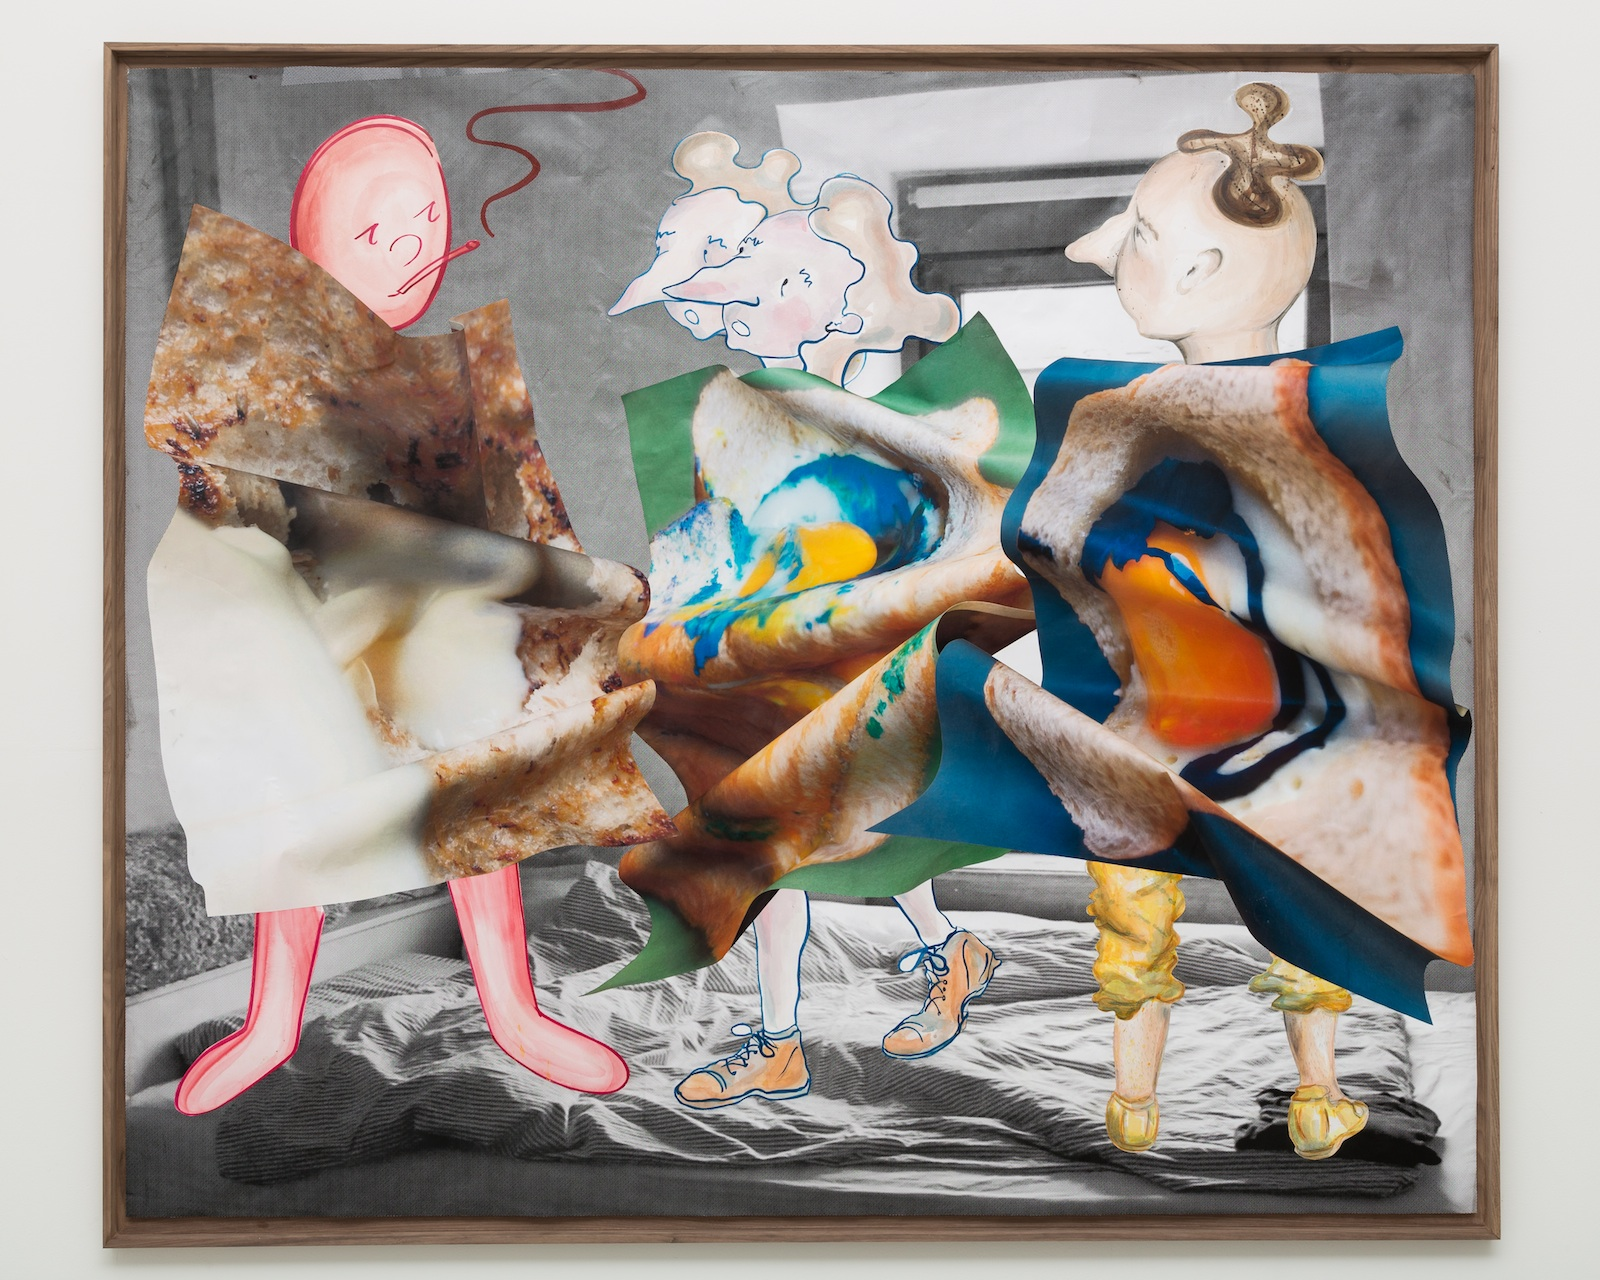 Anne Speier, Observing a Conversation, 2014, collage: watercolor, pencil, crayon, ink, watercolor paper, laser prints, fixative, uv protect varnish frame: walnut, foamboard, 171.5 x 147.5 x 5 cm, 67.5 x 58.26 x 1.96 ins. Two Parks , Philipp Timischl and Anne Speier